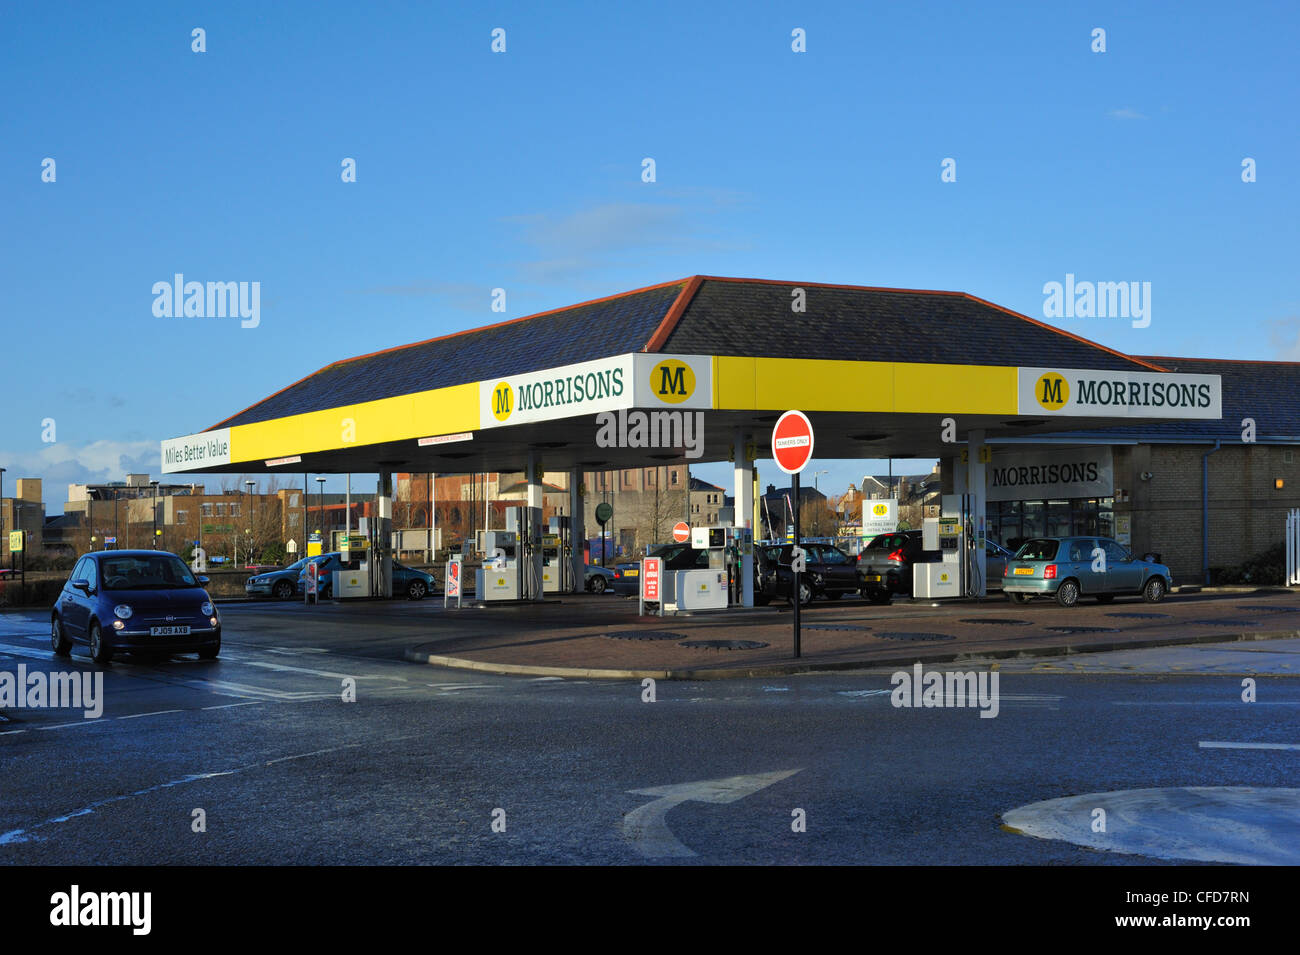 Morrisons Petrol Station Stock Photos & Morrisons Petrol Station ...